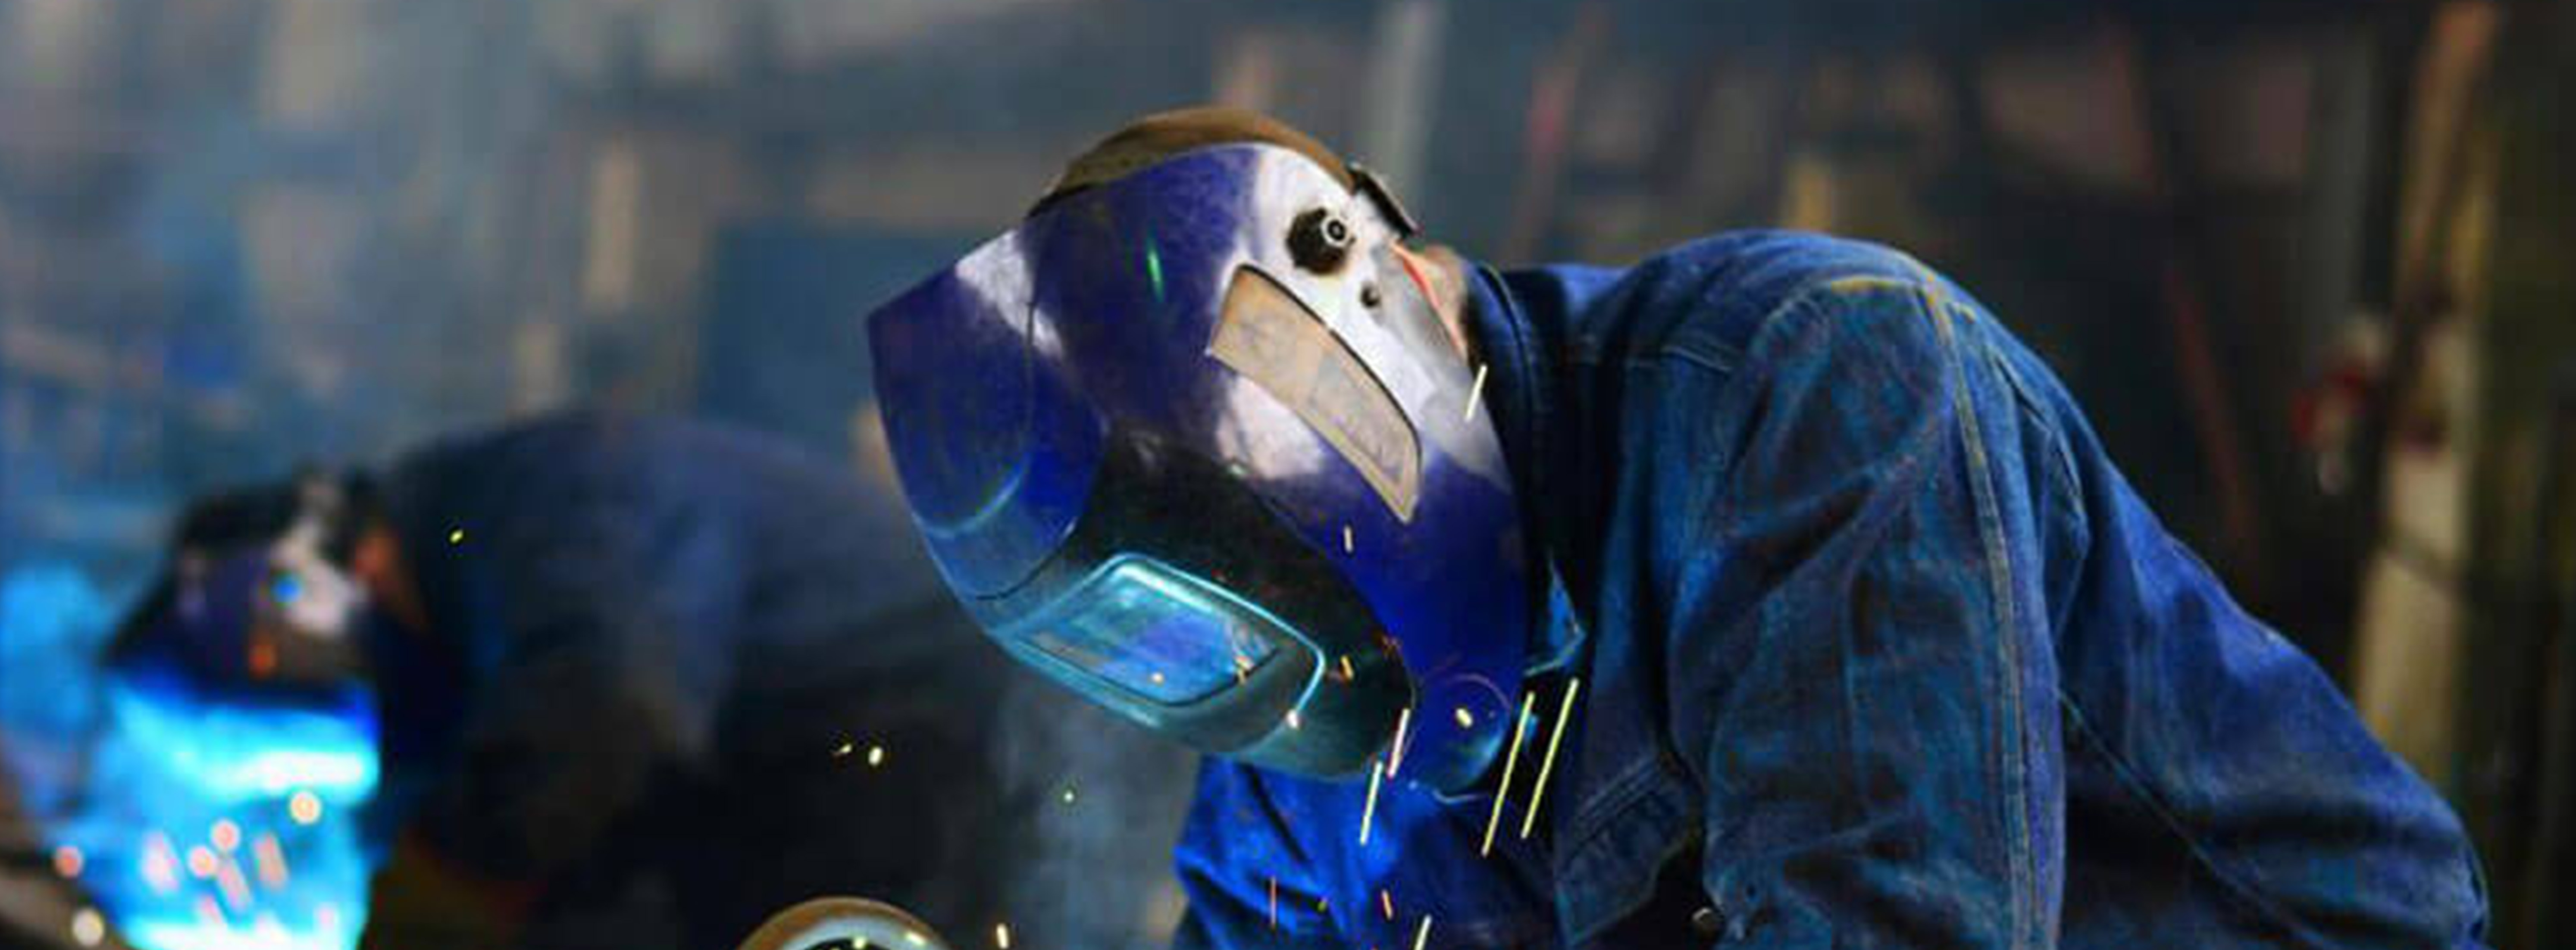 Welder with mask on